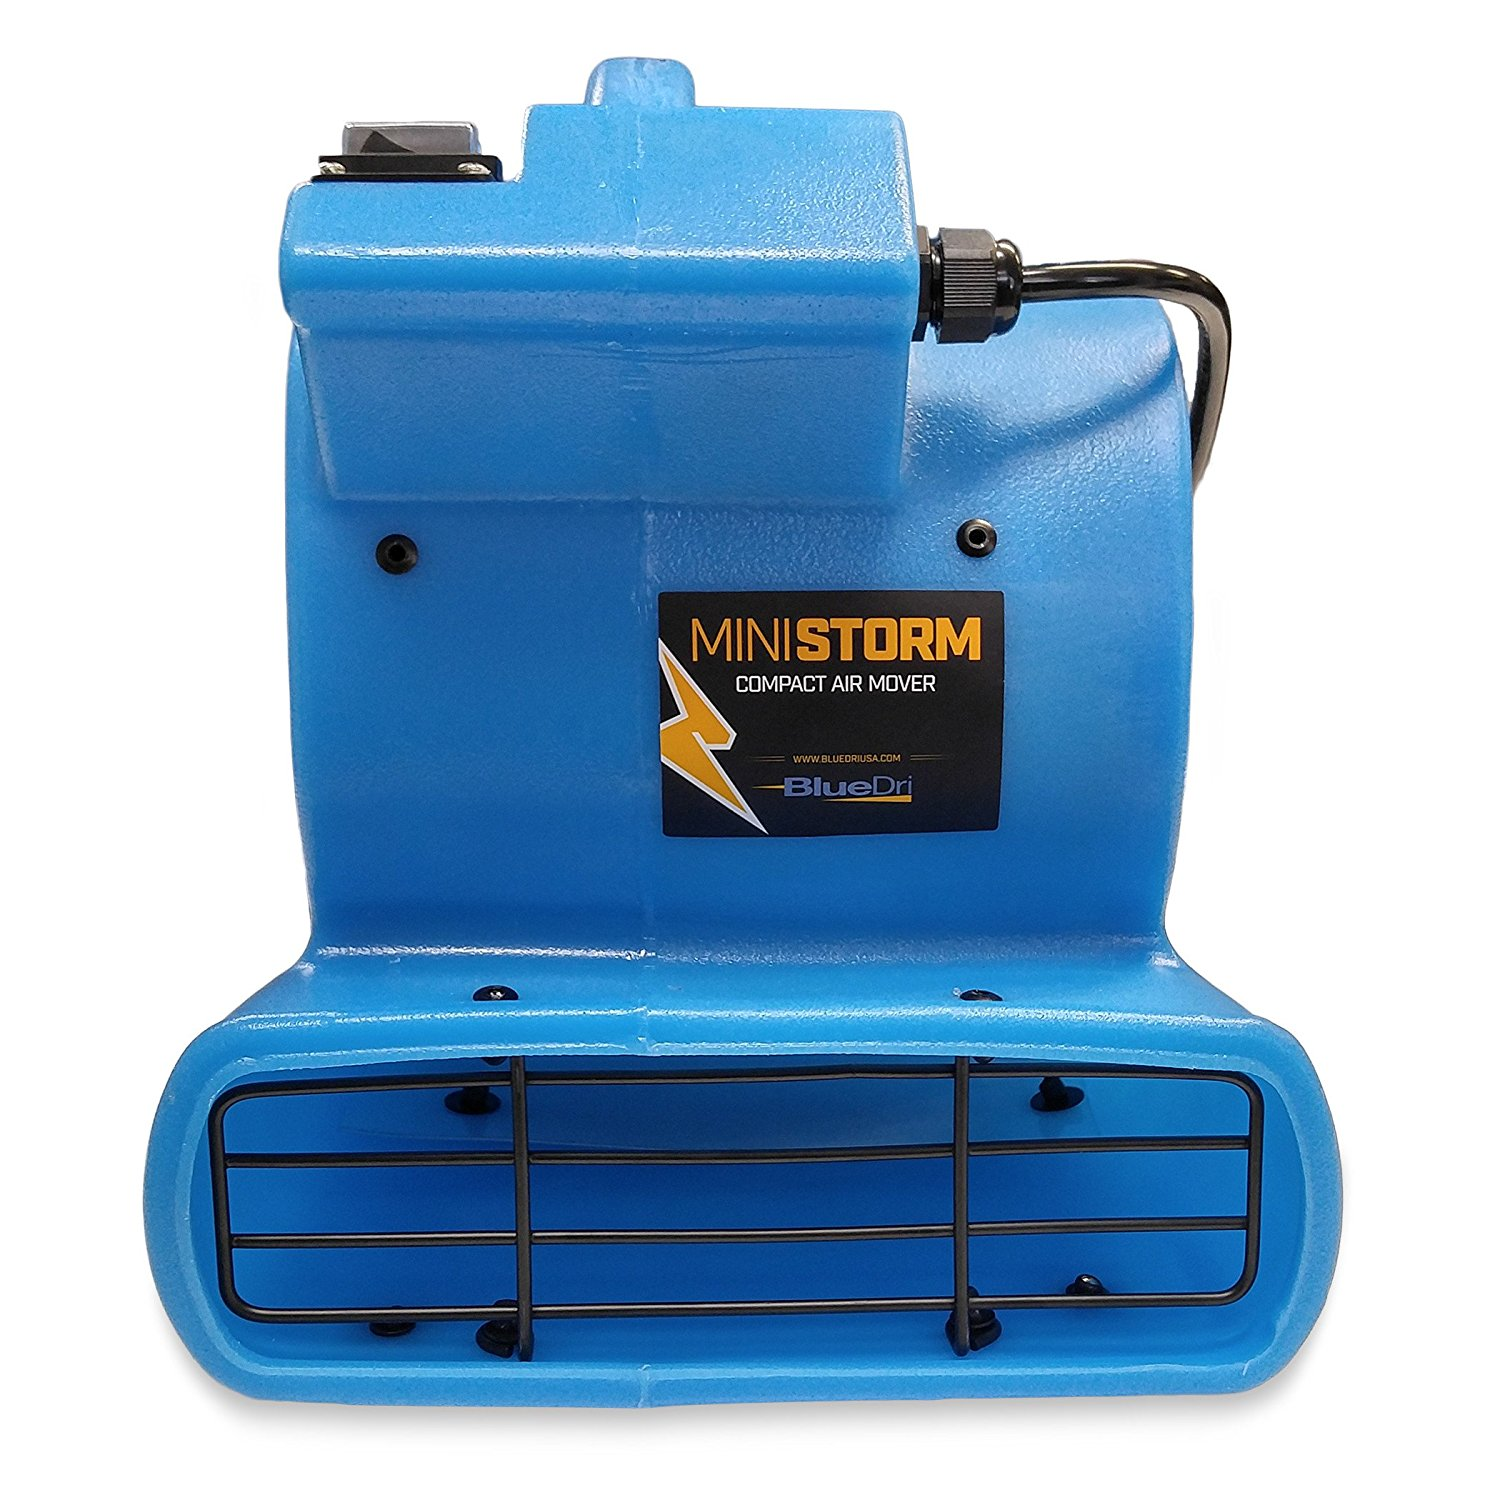 Soleaire Mini Storm 1/12 HP Mini Air Mover Carpet Dryer Floor Blower Fan for Home Use, Blue